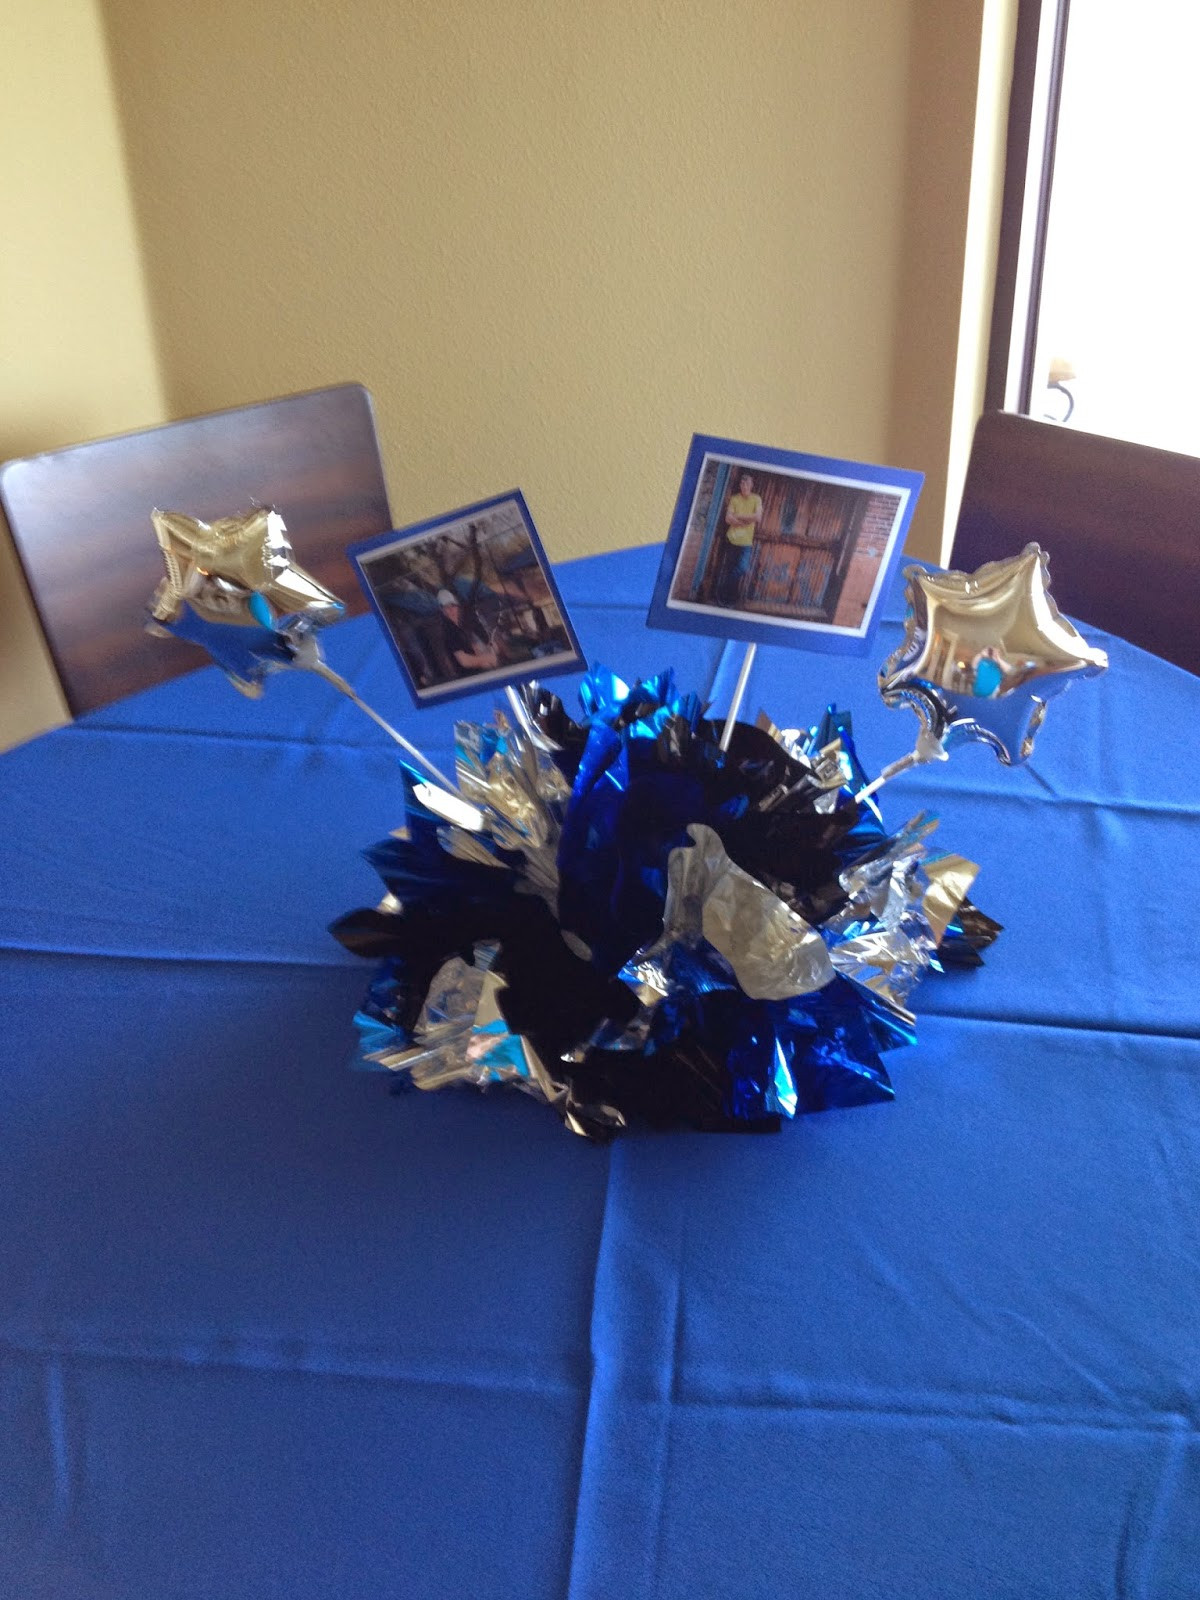 Graduation Party Centerpiece Ideas  Party People Event Decorating pany Fabric and Balloon